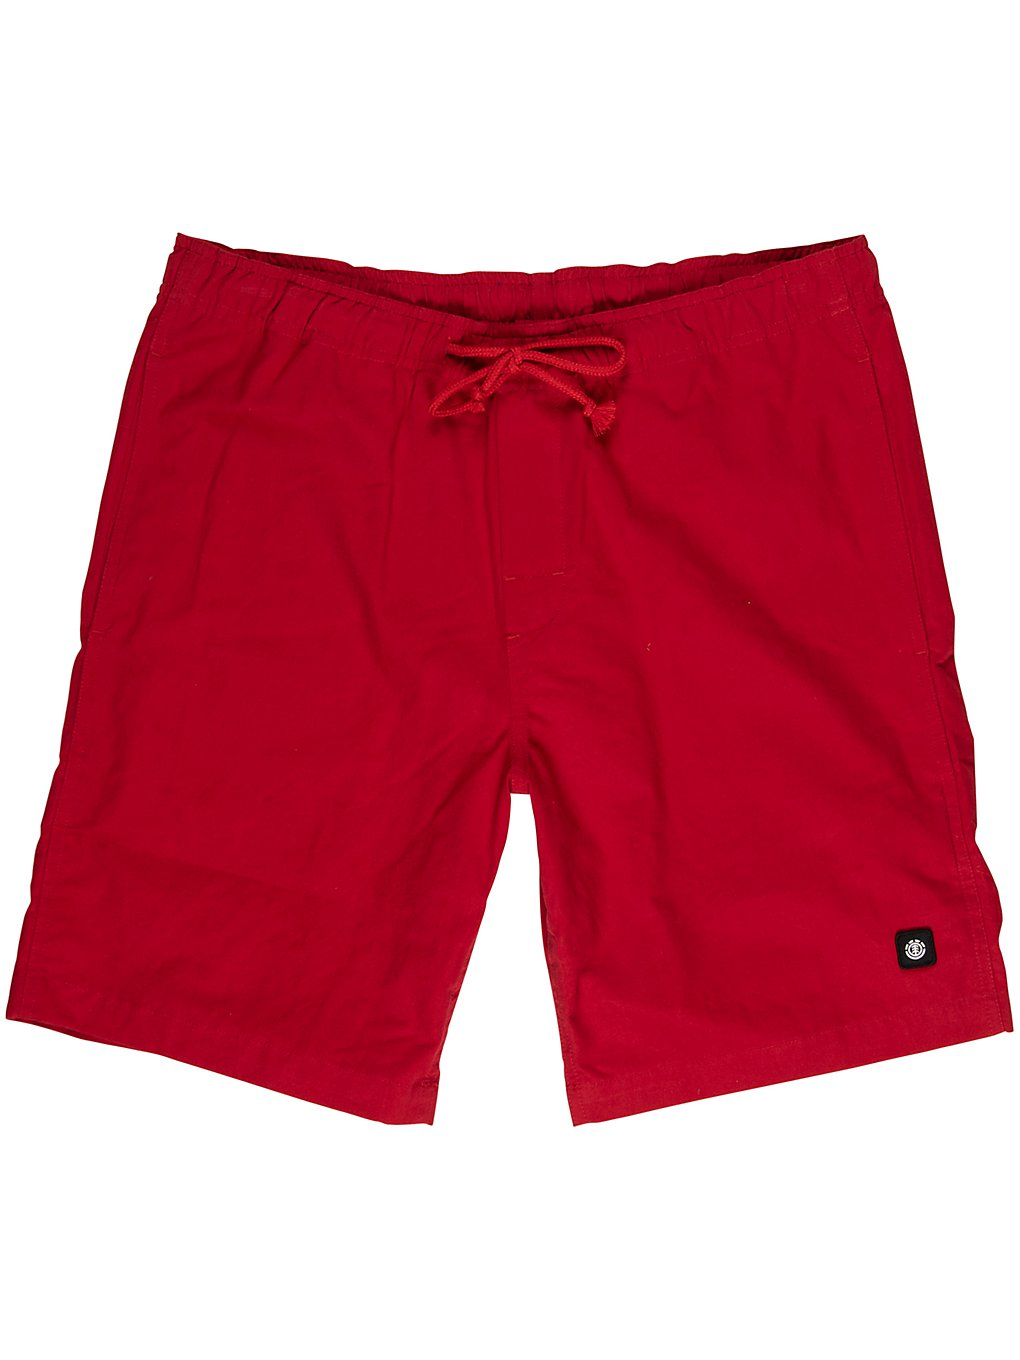 Element Vacation Shorts chili pepper